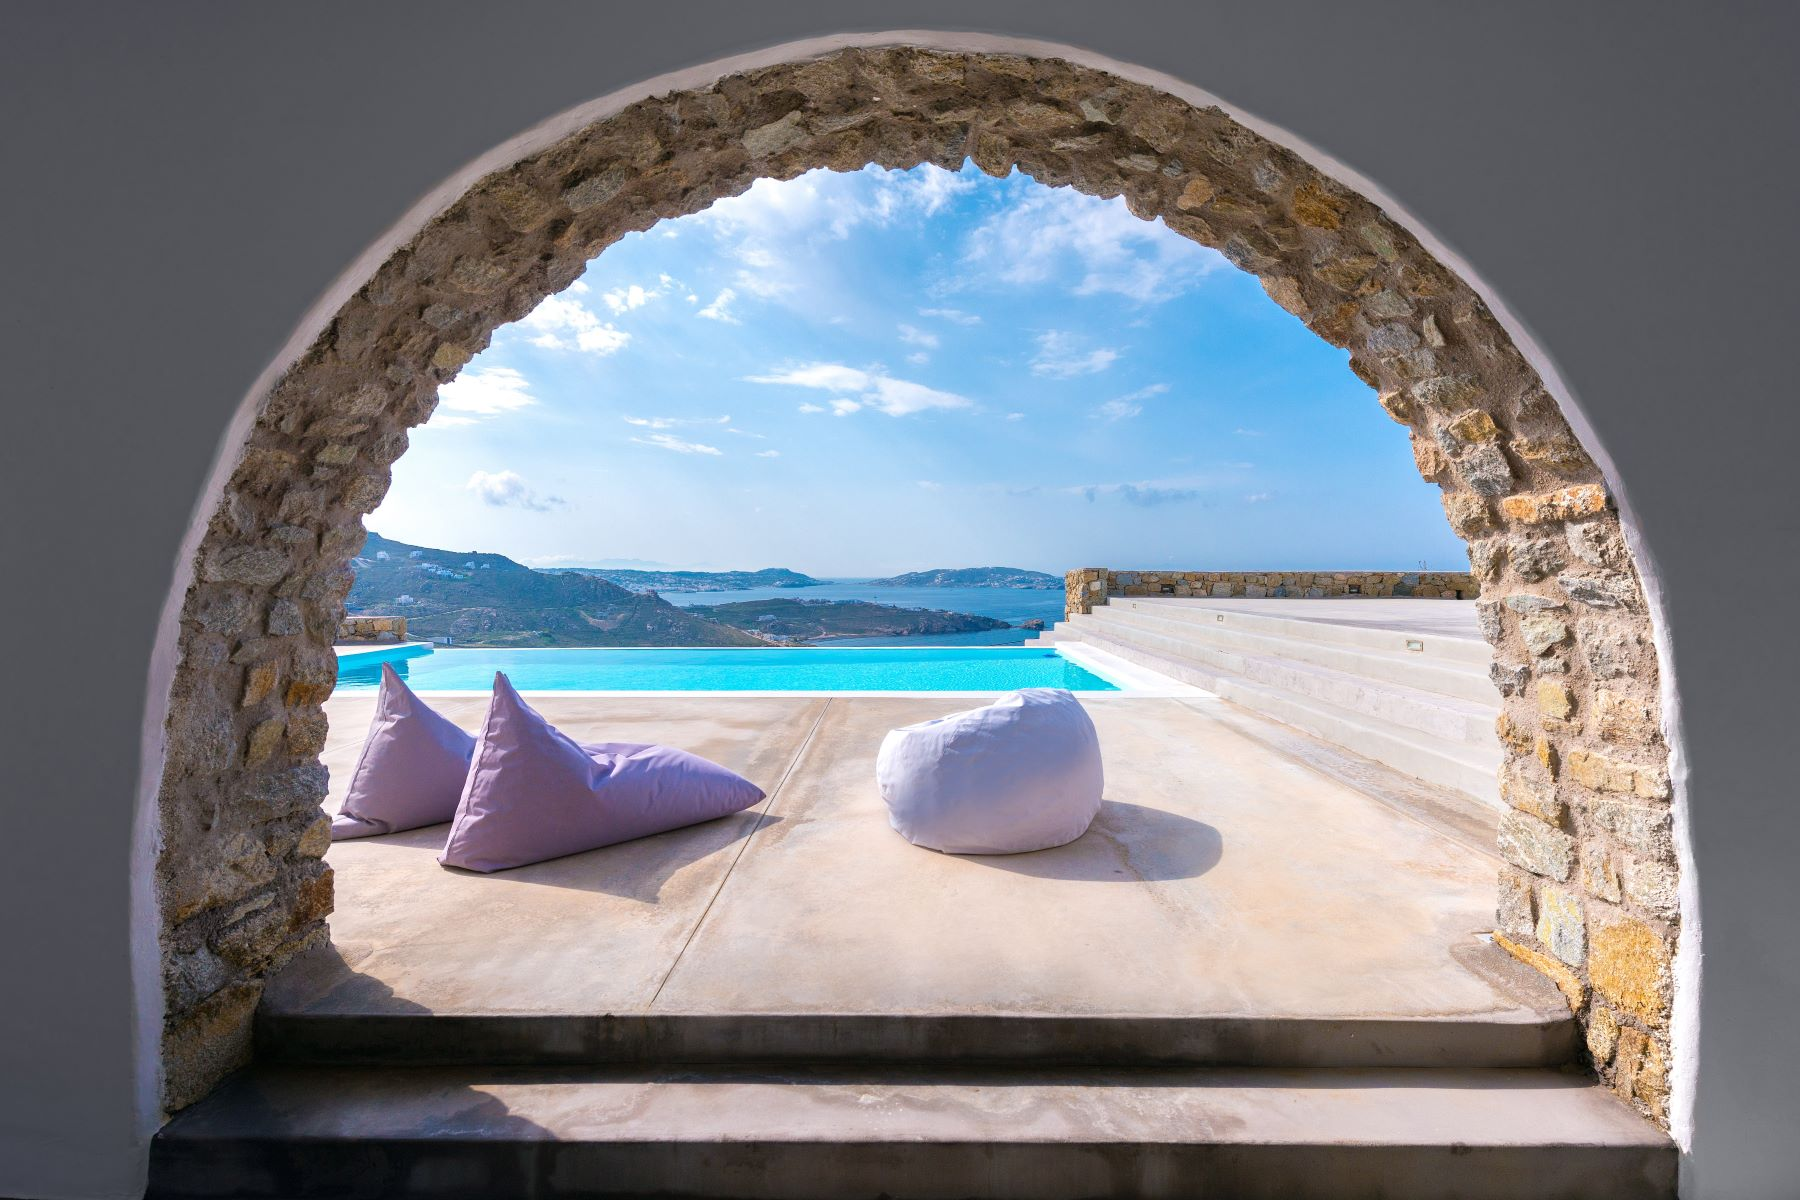 Single Family Home for Sale at Blue Element Choulakia Blue Element Mykonos, Southern Aegean, 84600 Greece